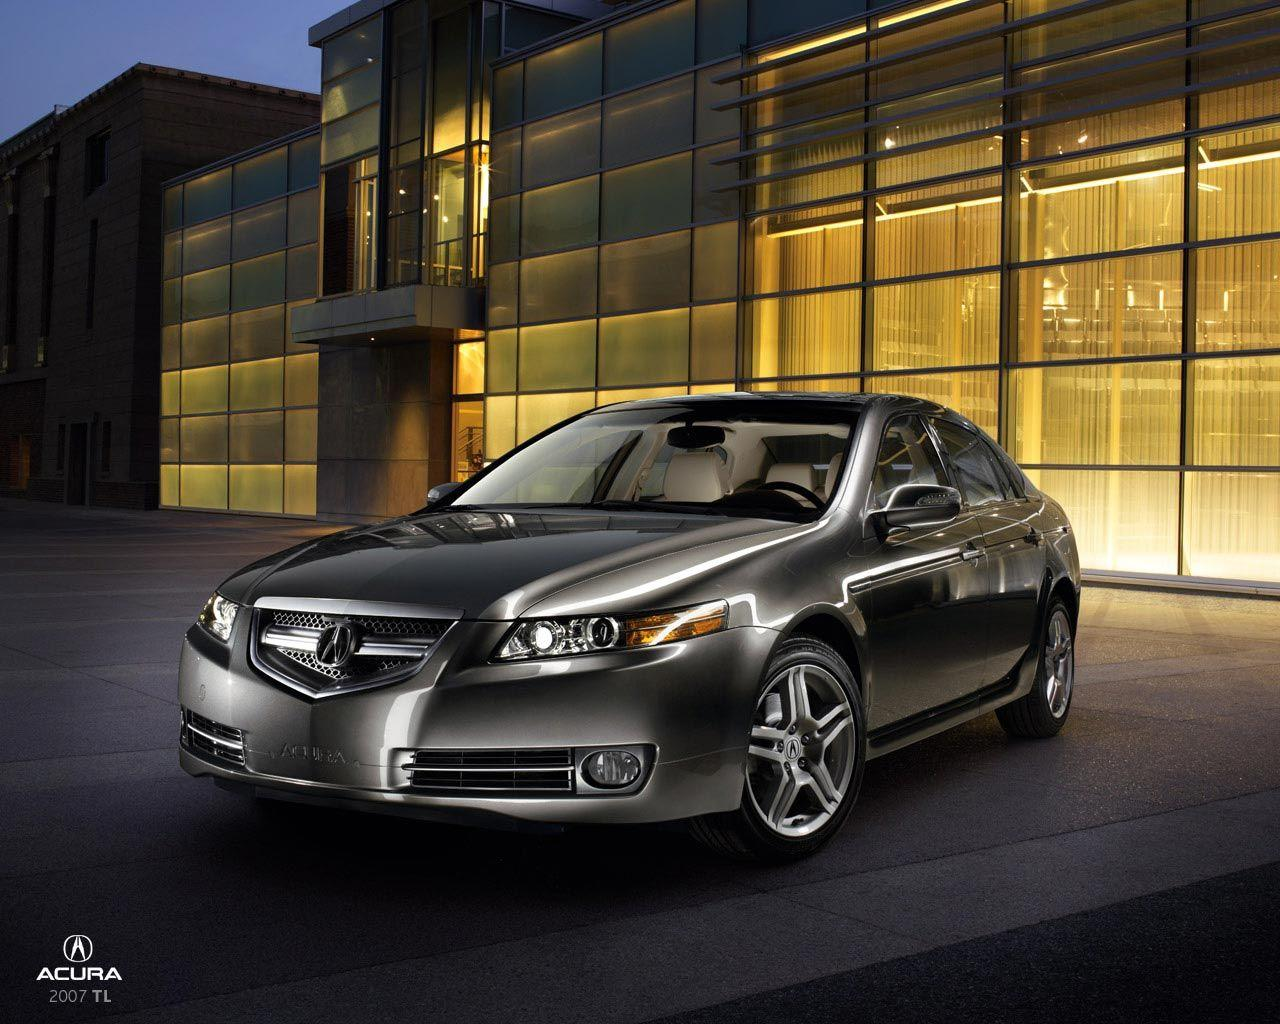 Free download Acura TL Wallpapers 184 post at December 6, 2014 ...